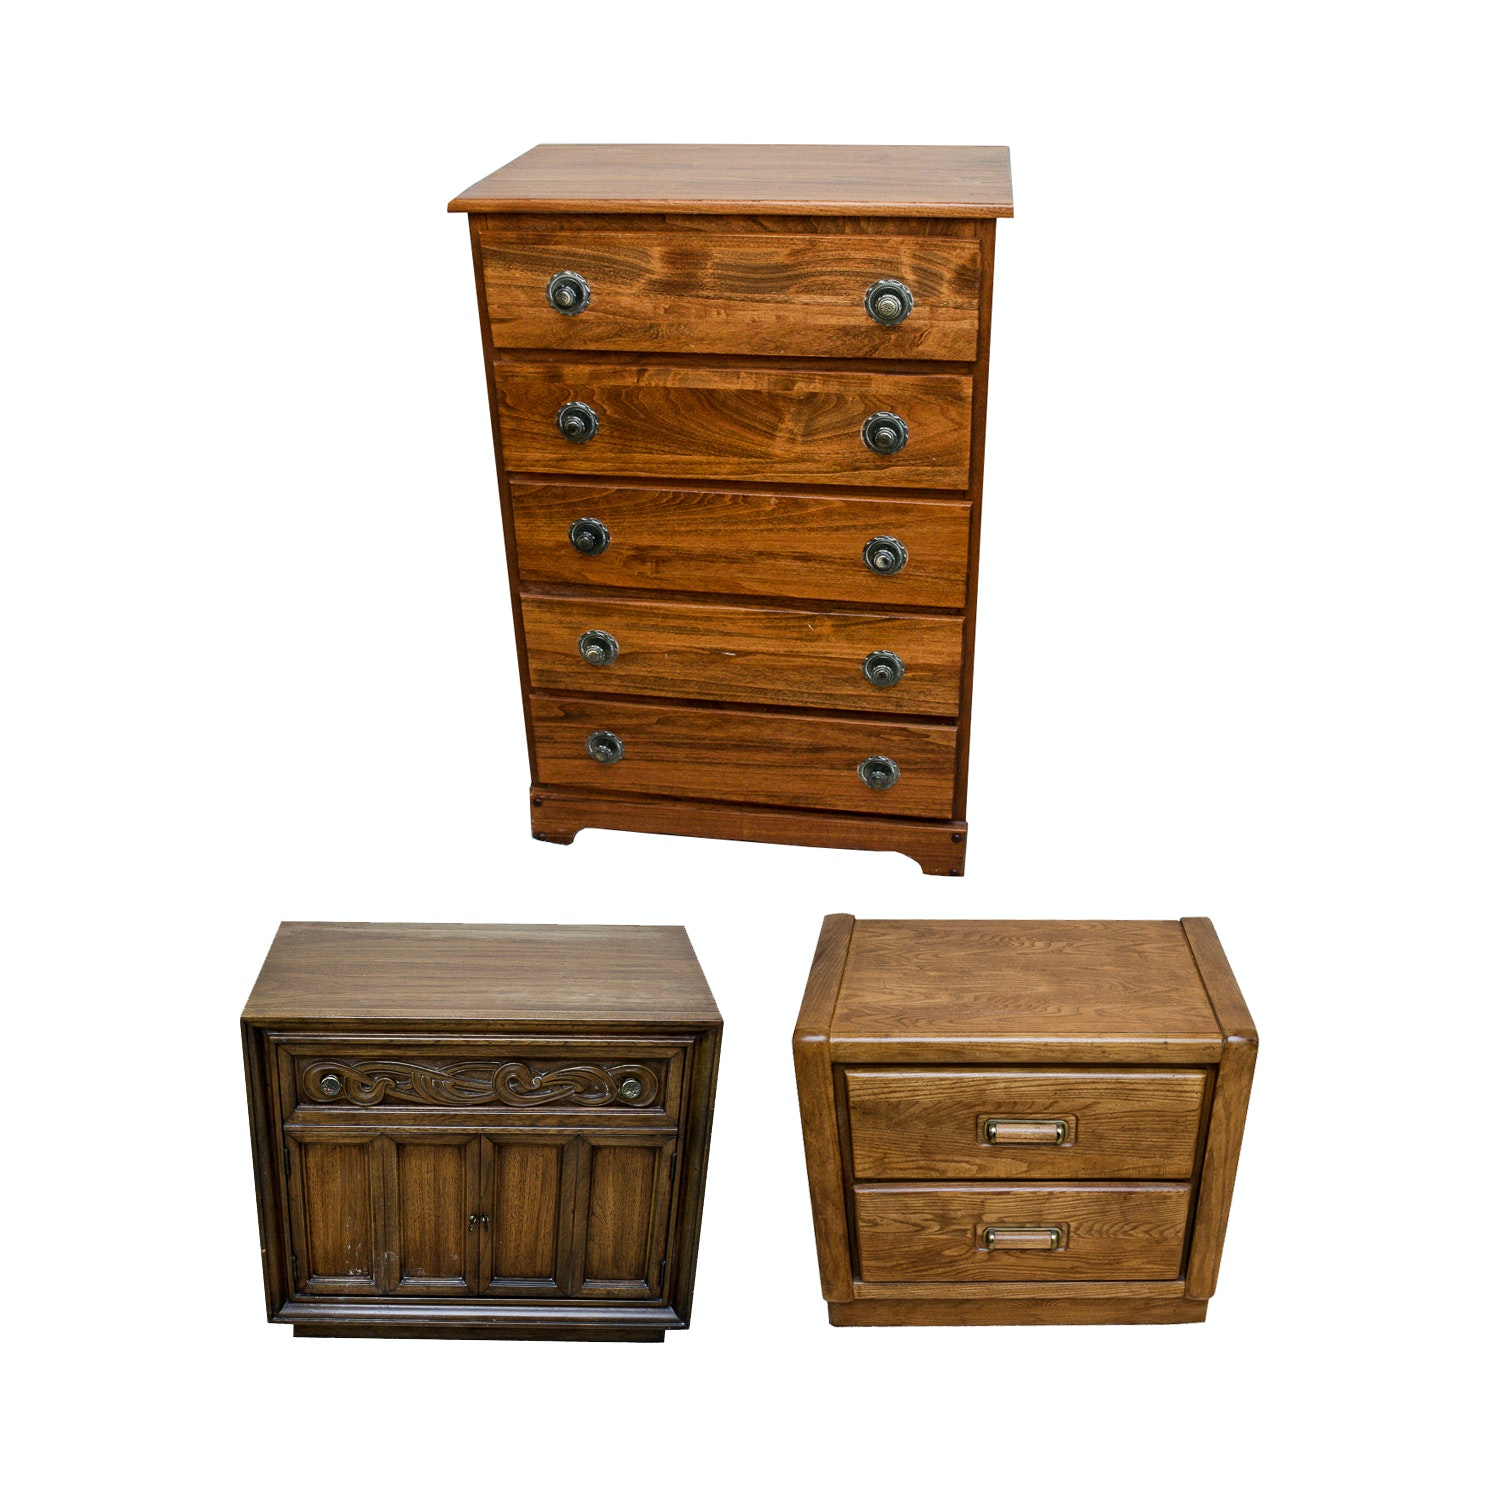 Two Nightstands and Chest of Drawers